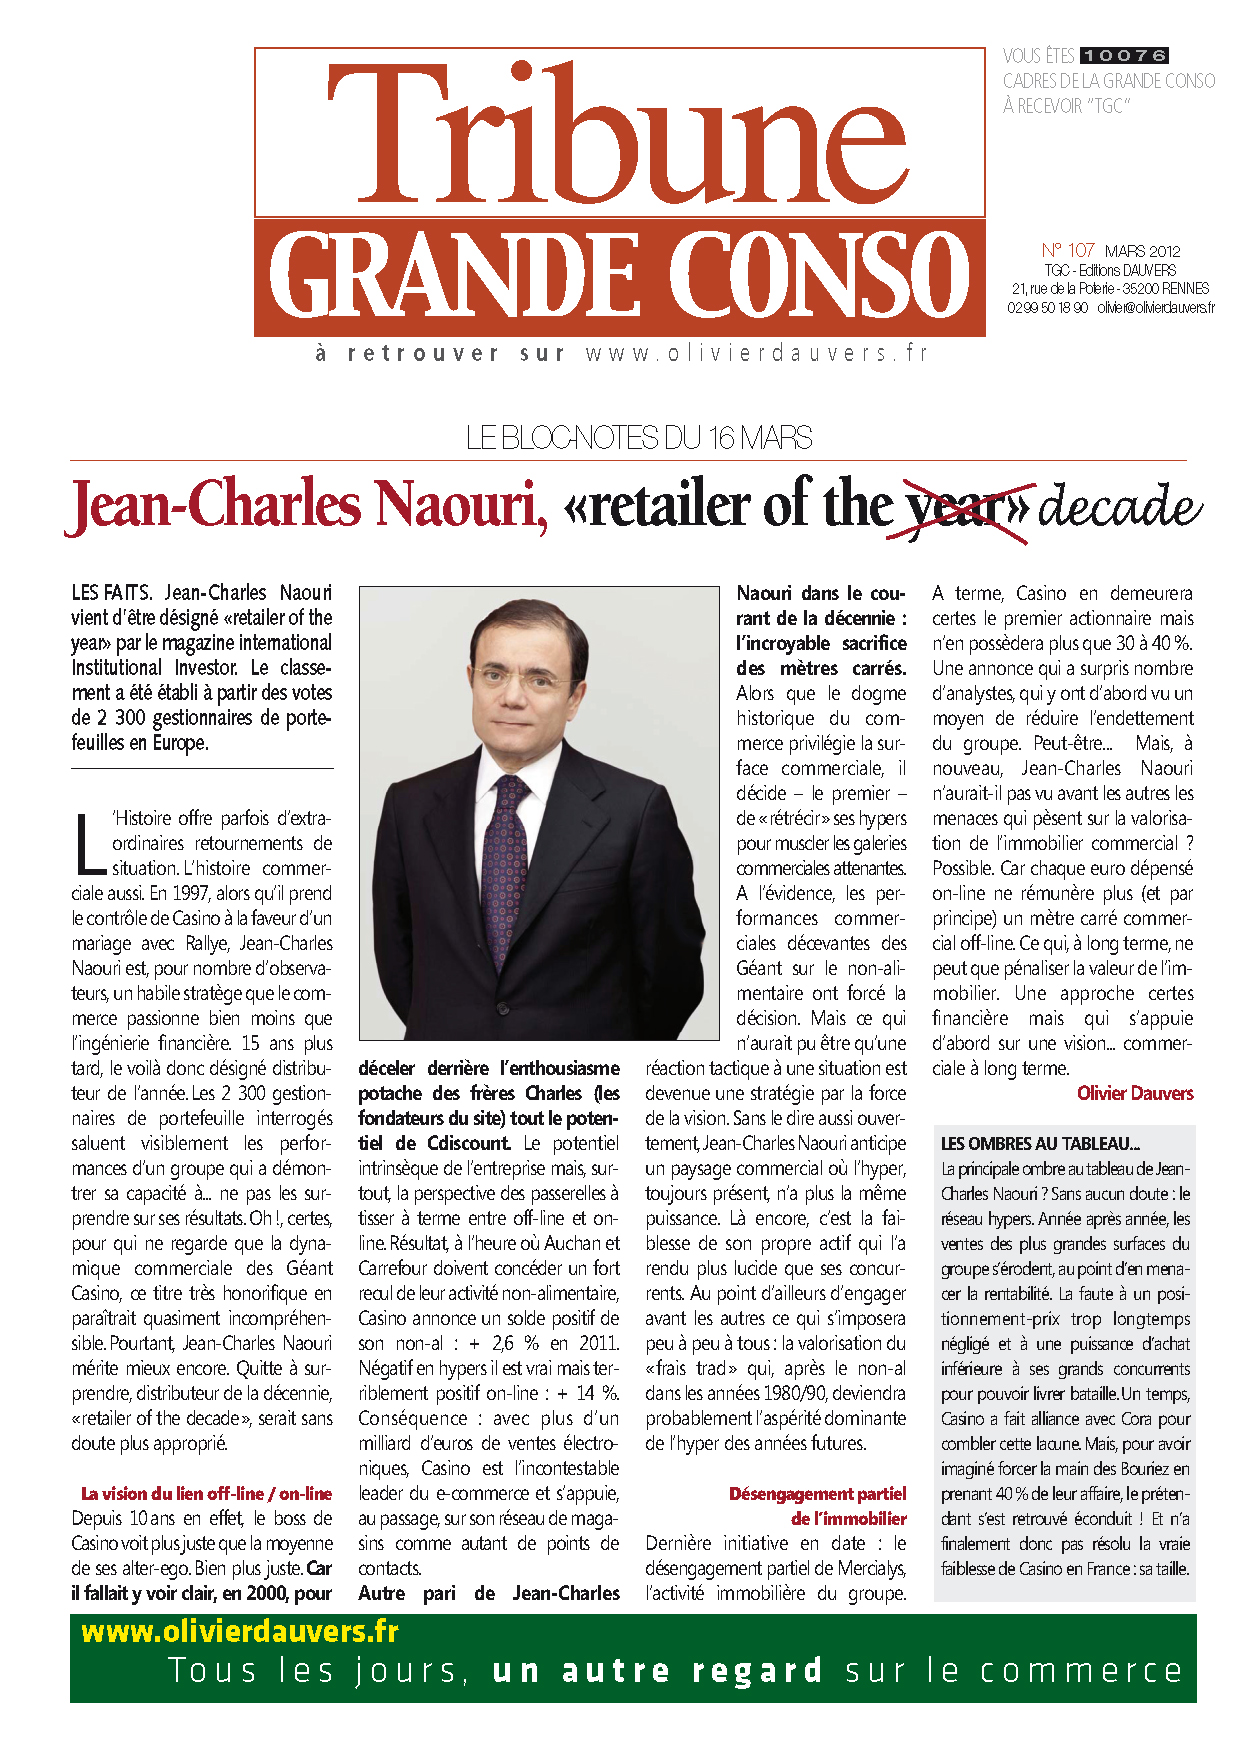 "Jean-Charles Naouri, ""retailer of the year"" (or the decade)"